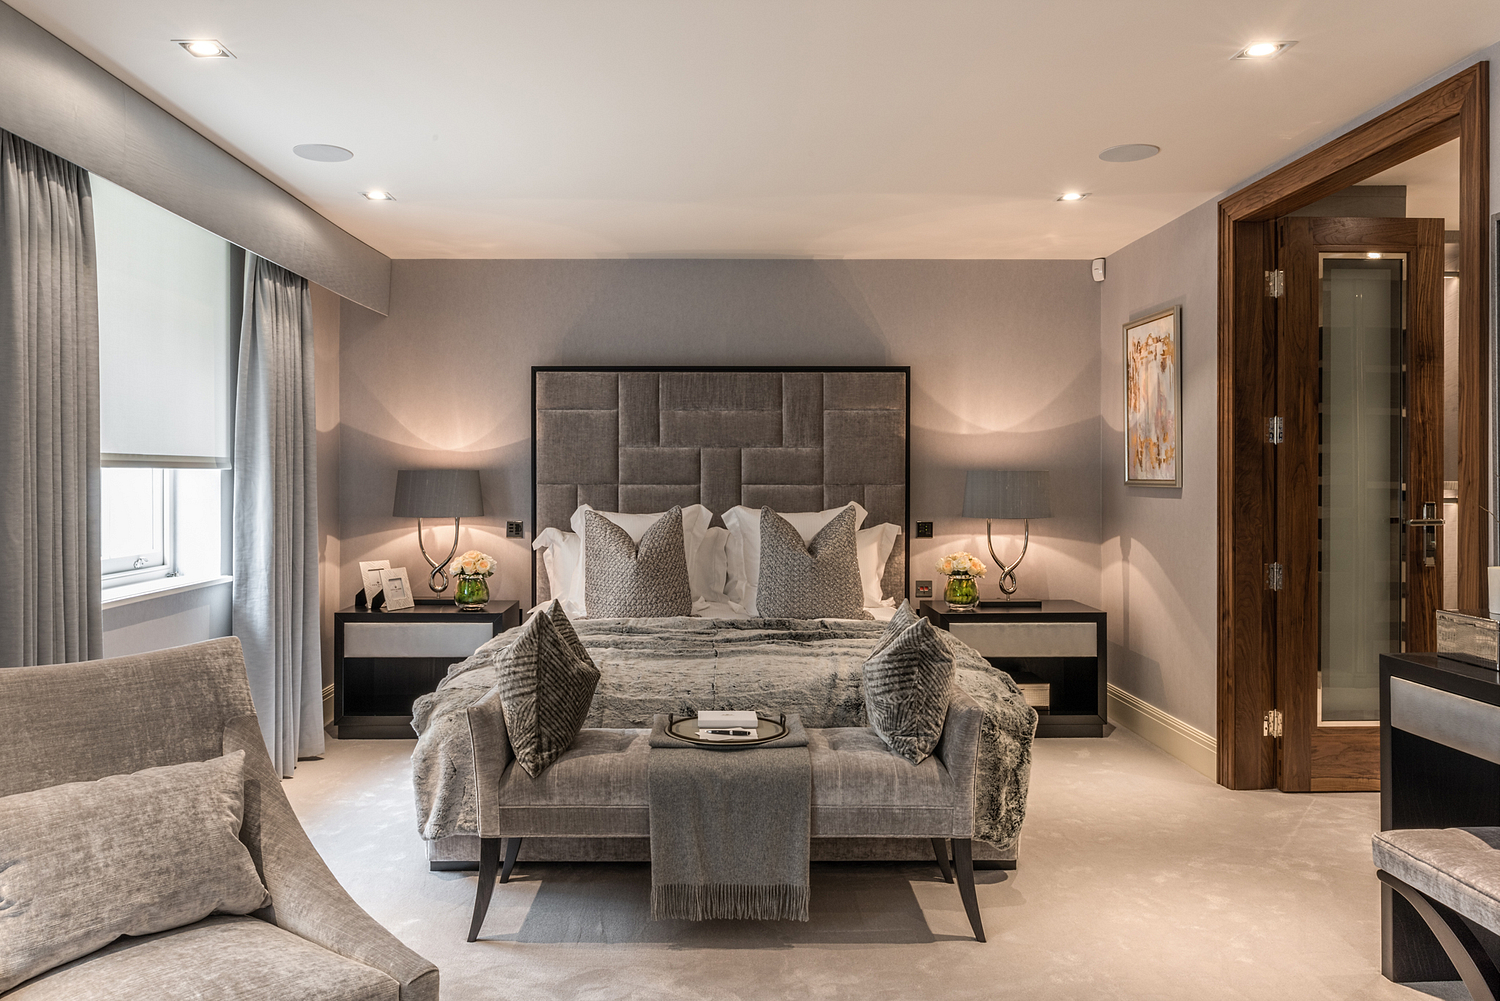 Bedroom with warm greys and wood, London house